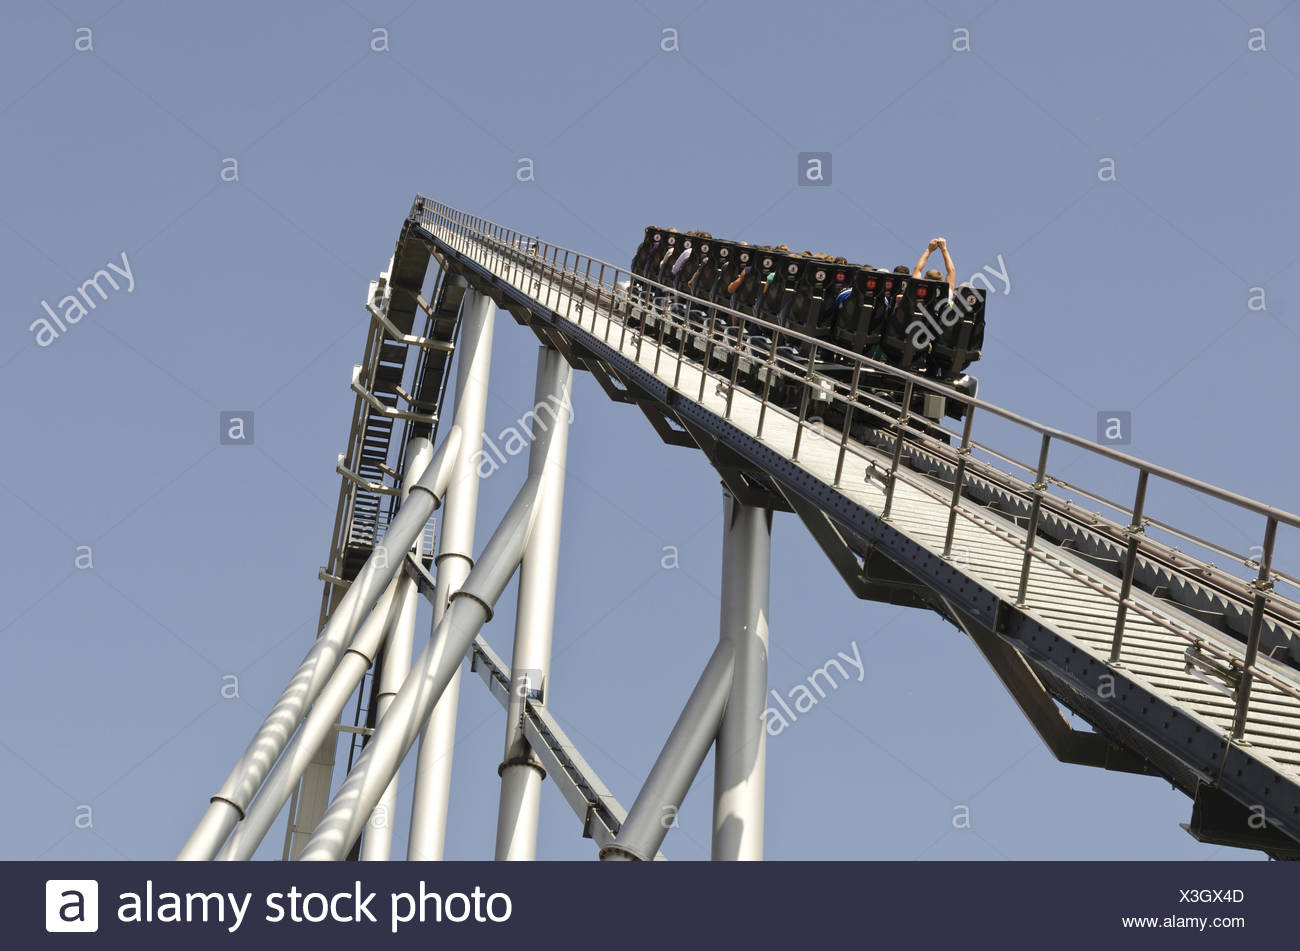 Silver Star Rollercoaster - Stock Image